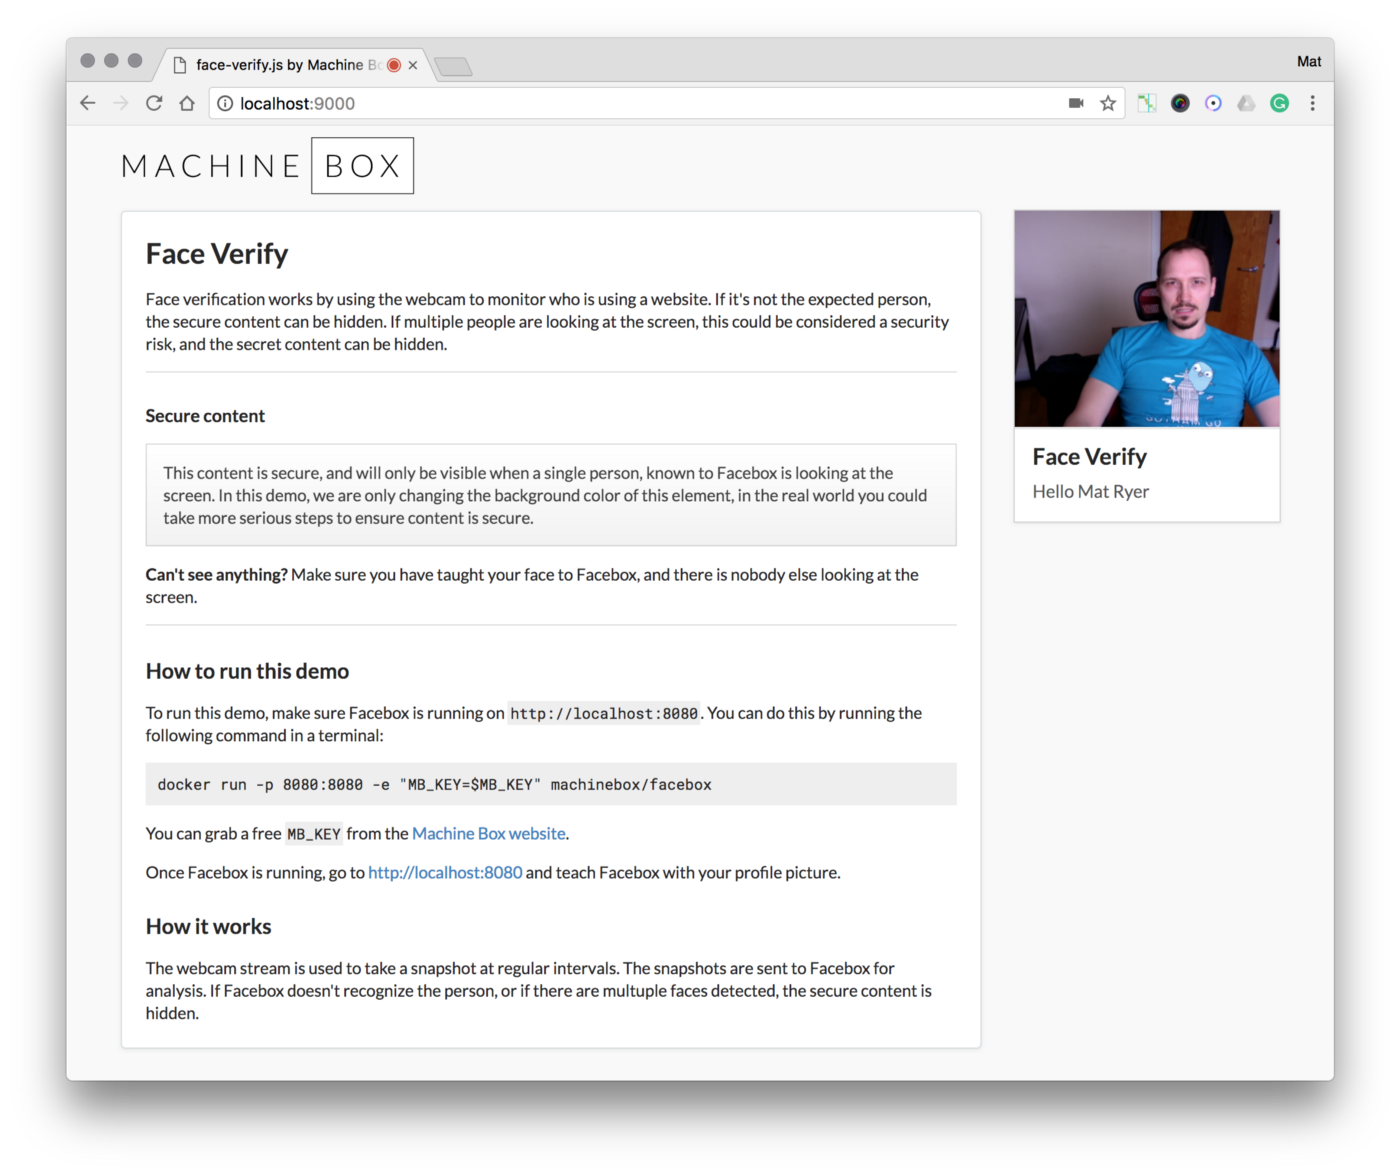 face-verify js: Monitoring who is physically looking at a website